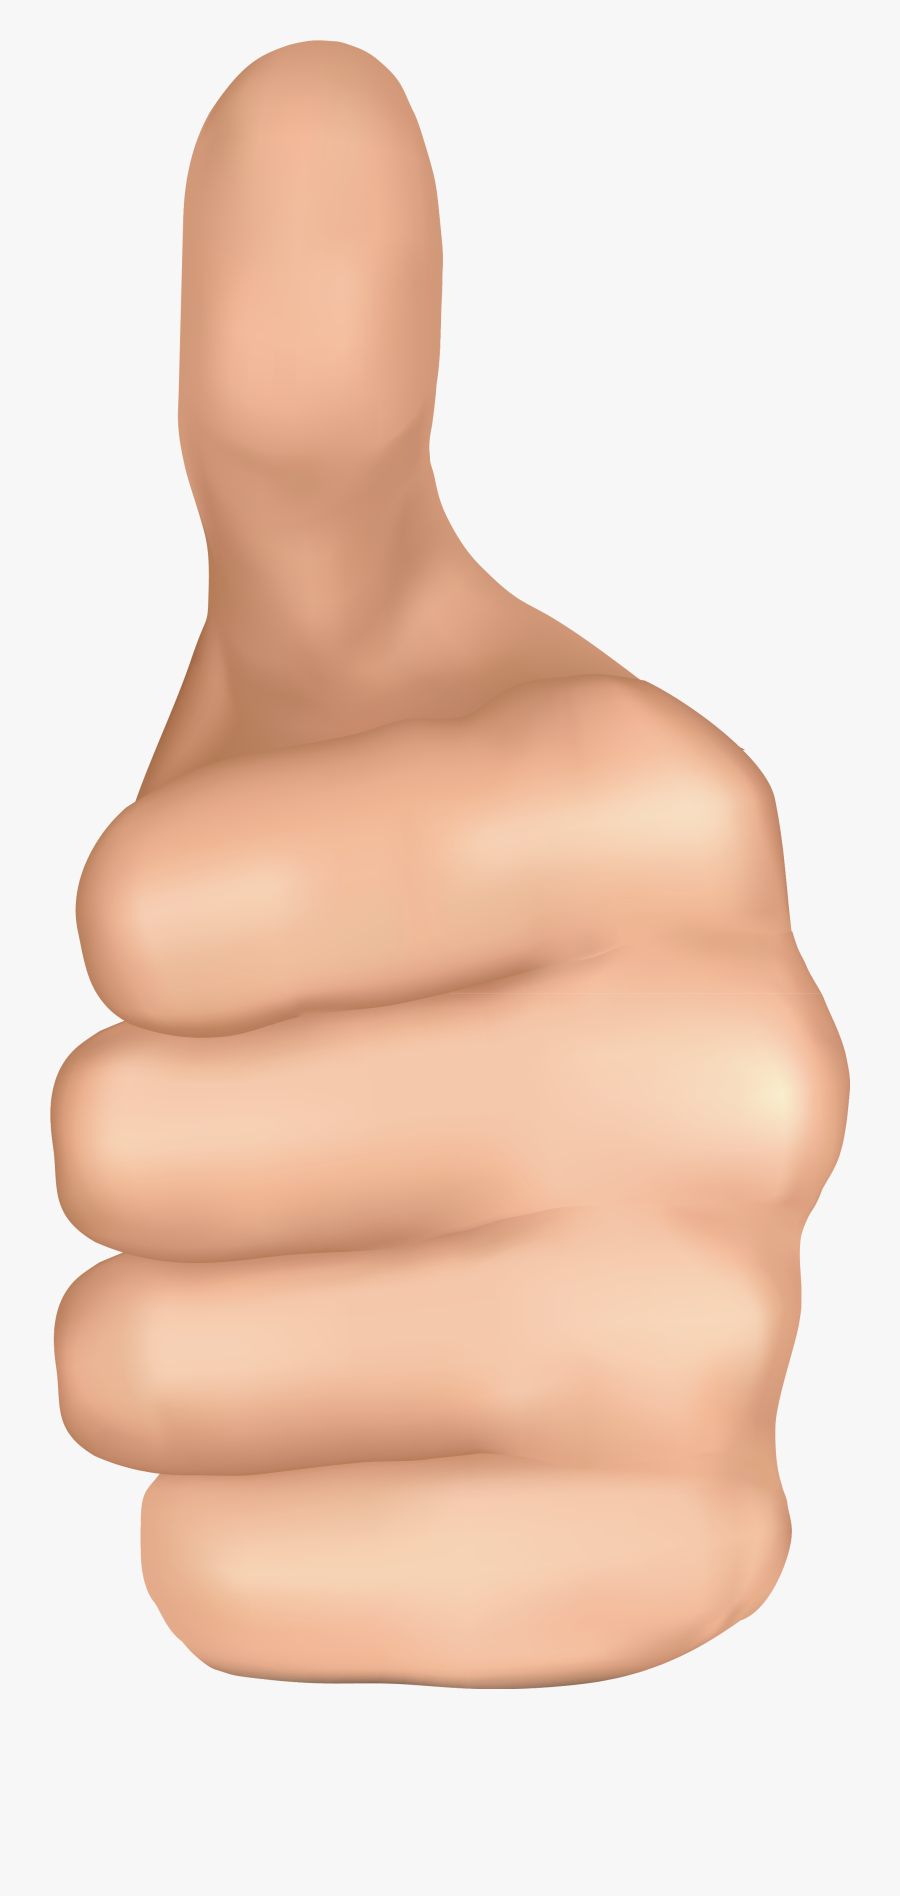 Thumb Up Hand Png Clipart Image - Hand Thumbs Up Png, Transparent Clipart